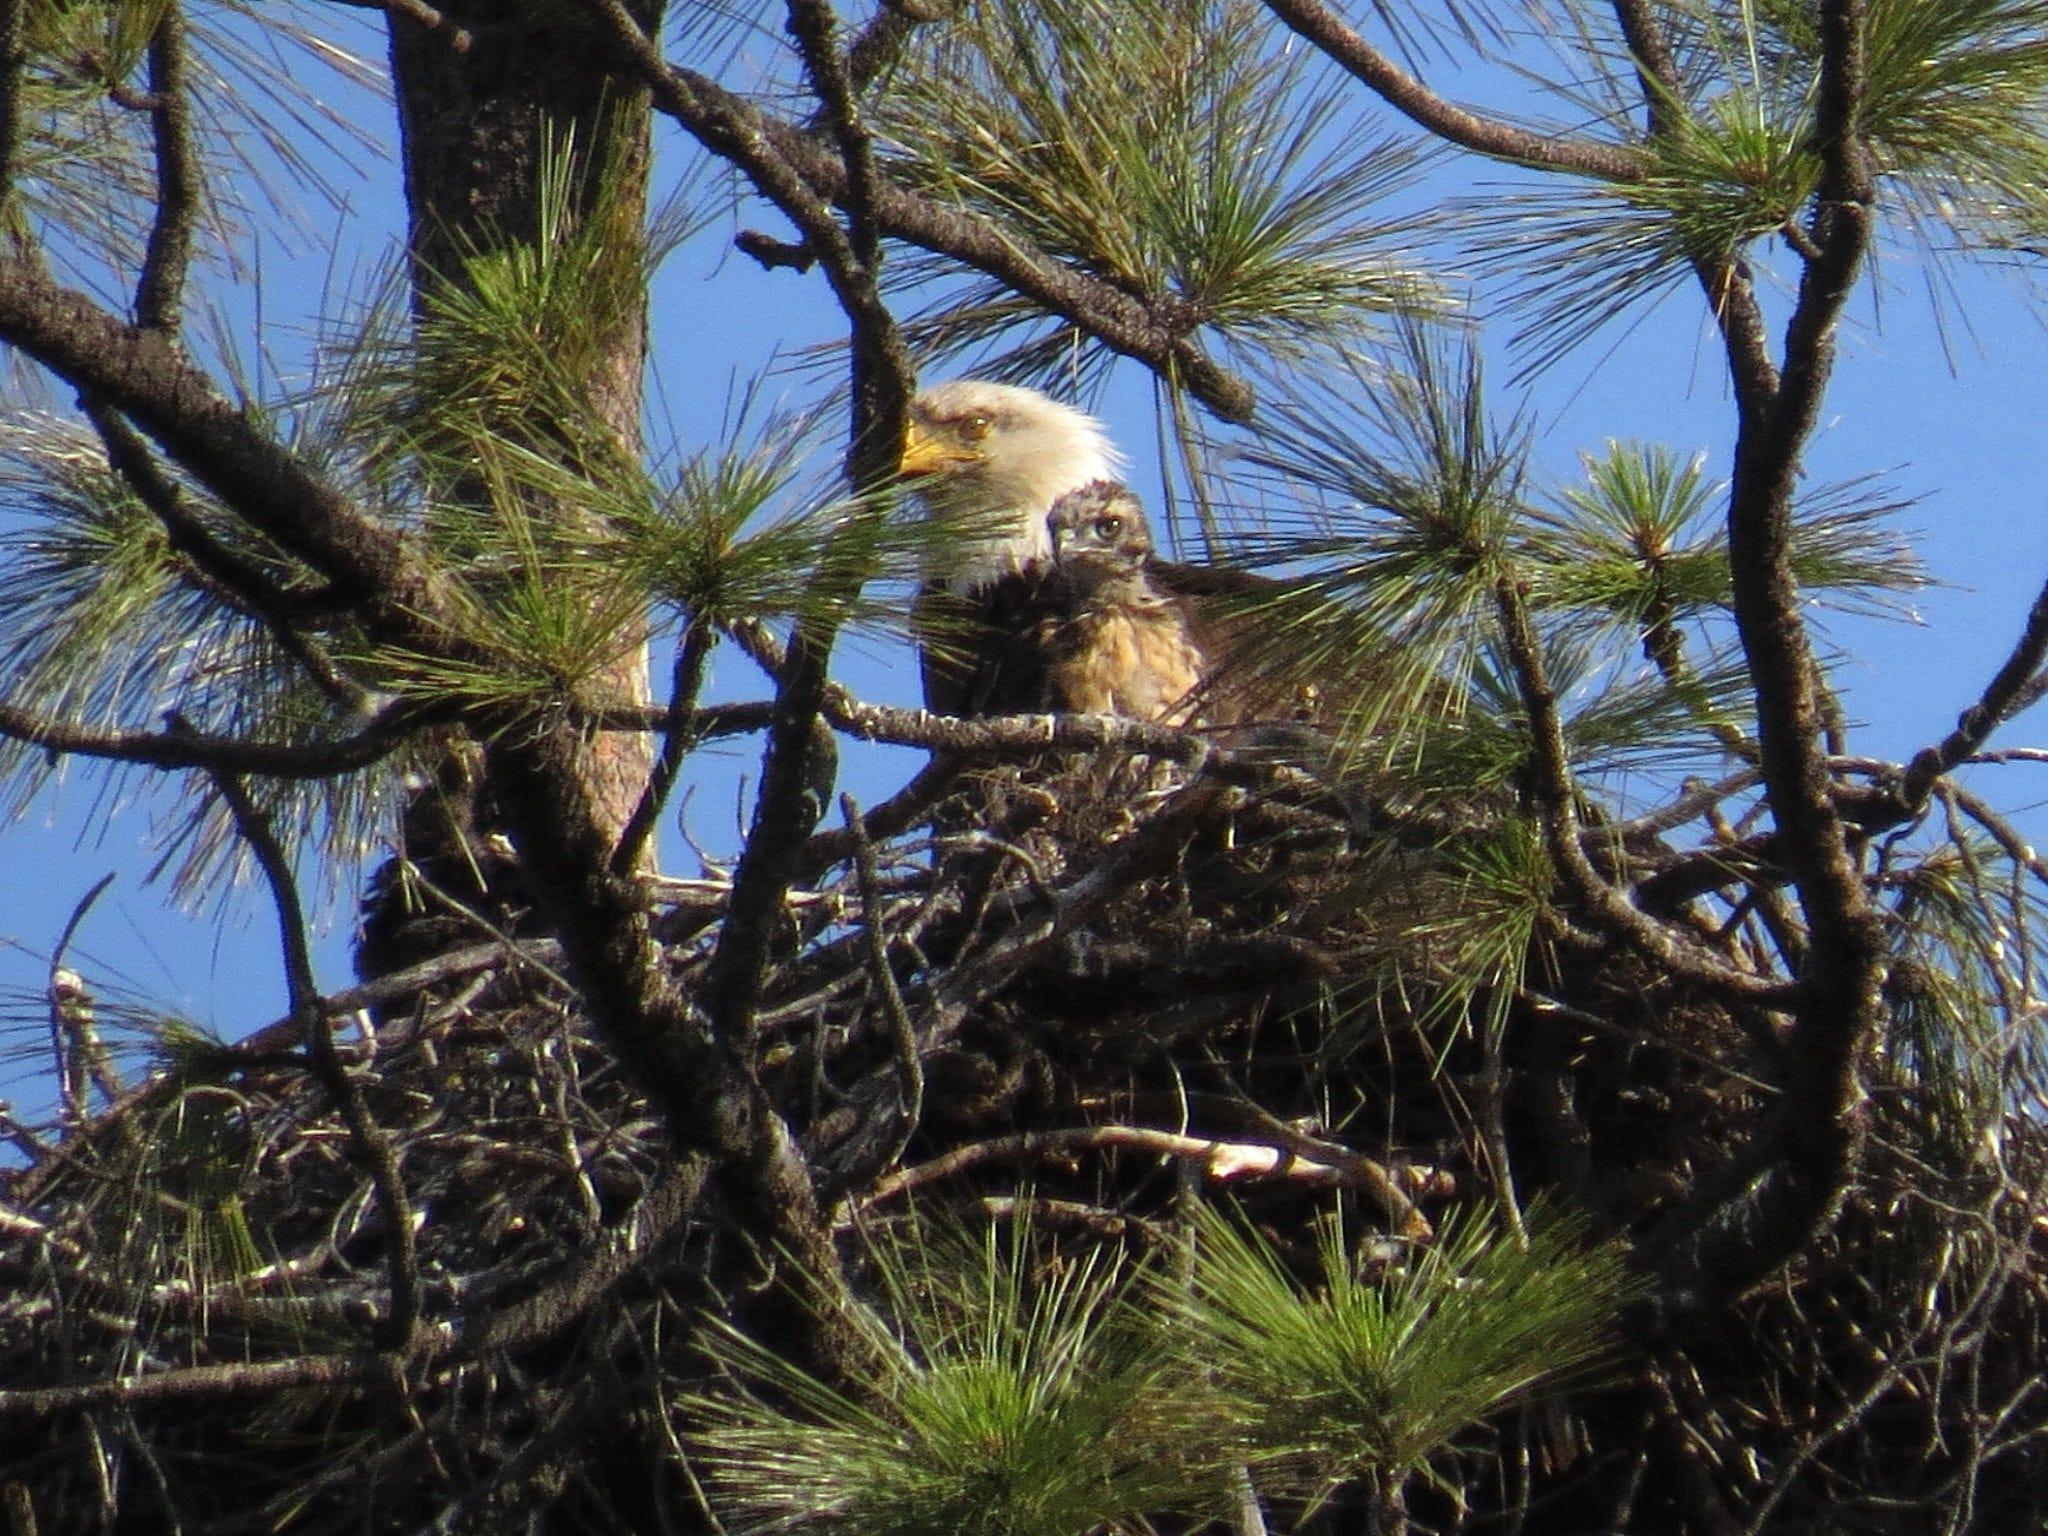 'You don't go and raise your dinner': California eagles defy odds by taking in baby hawk